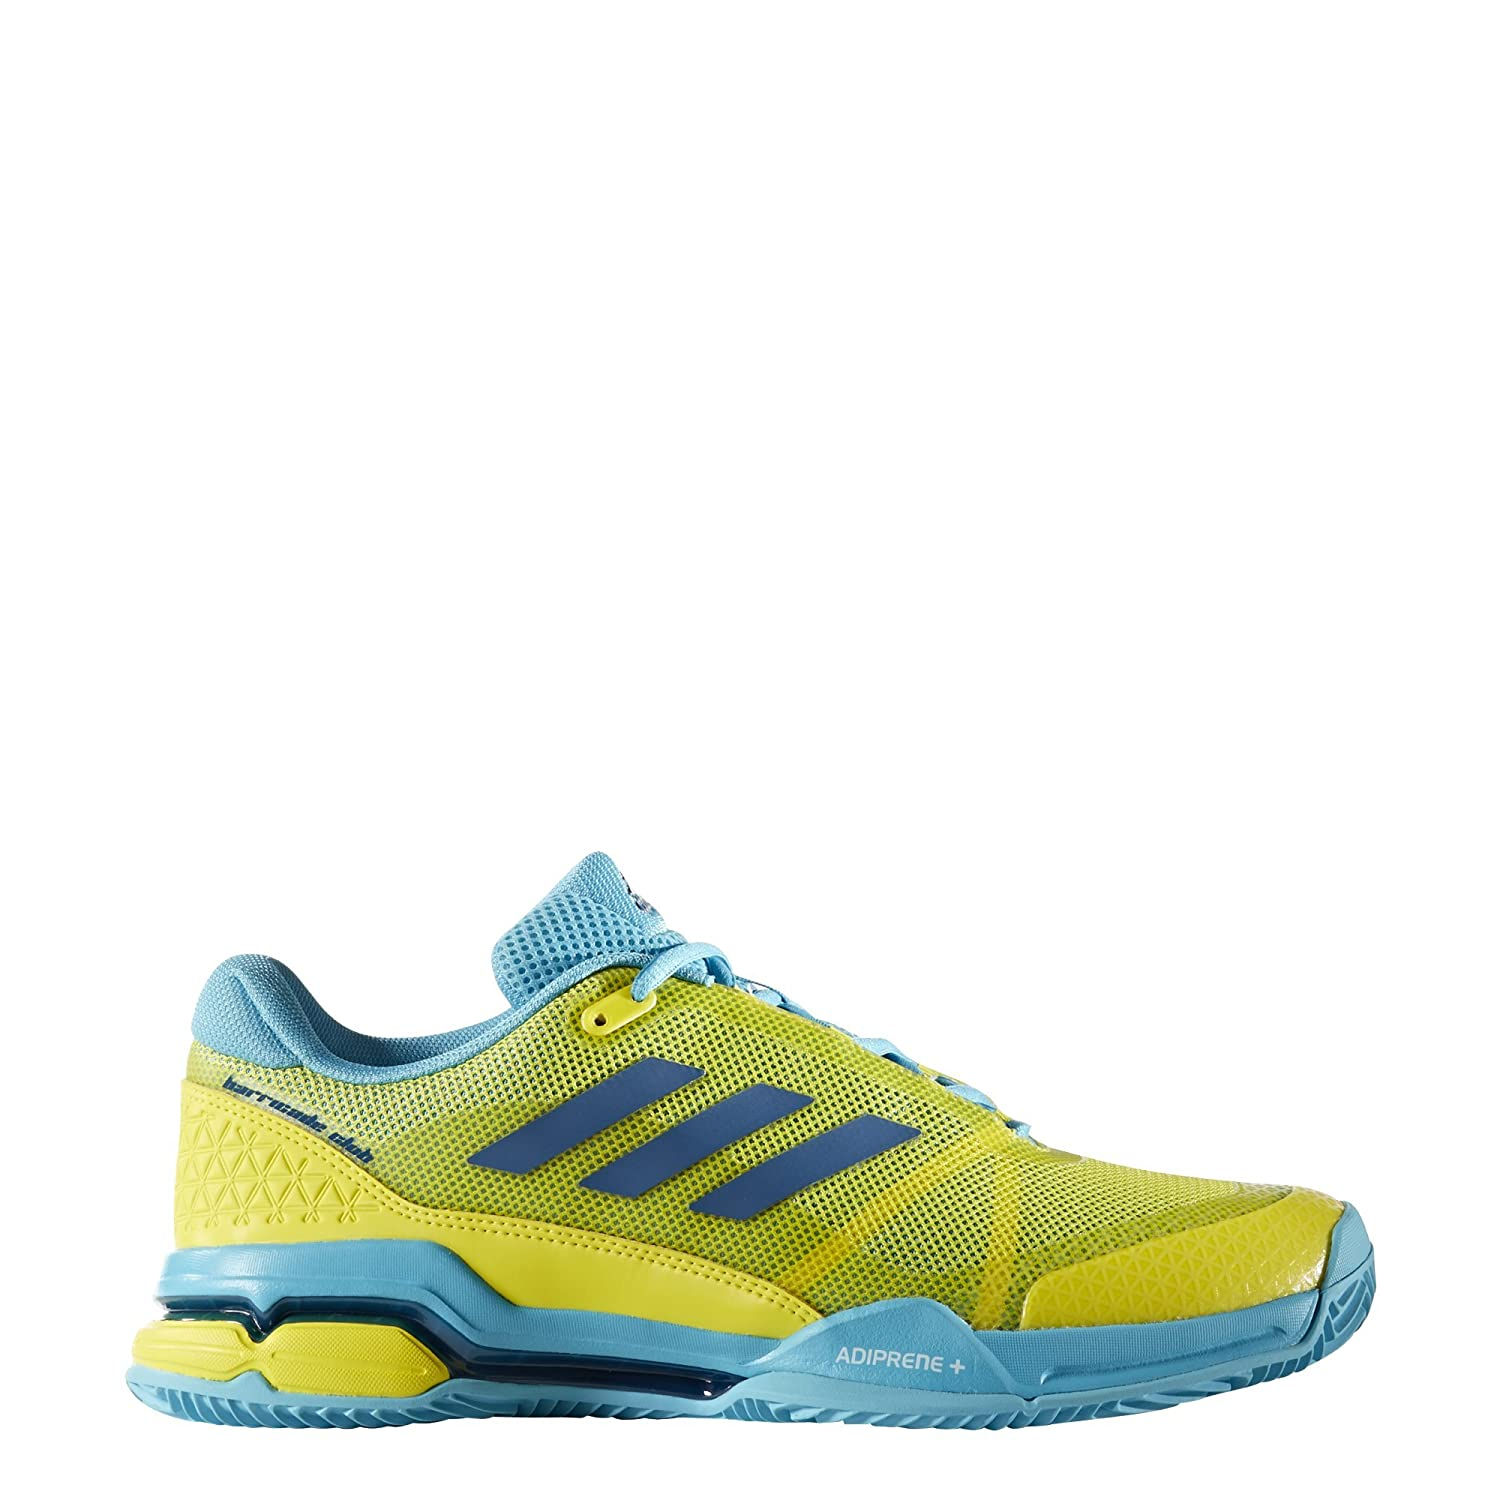 Adidas - BB3403 - Barricade Club - Zapatillas Tenis/Padel (42.5 ...